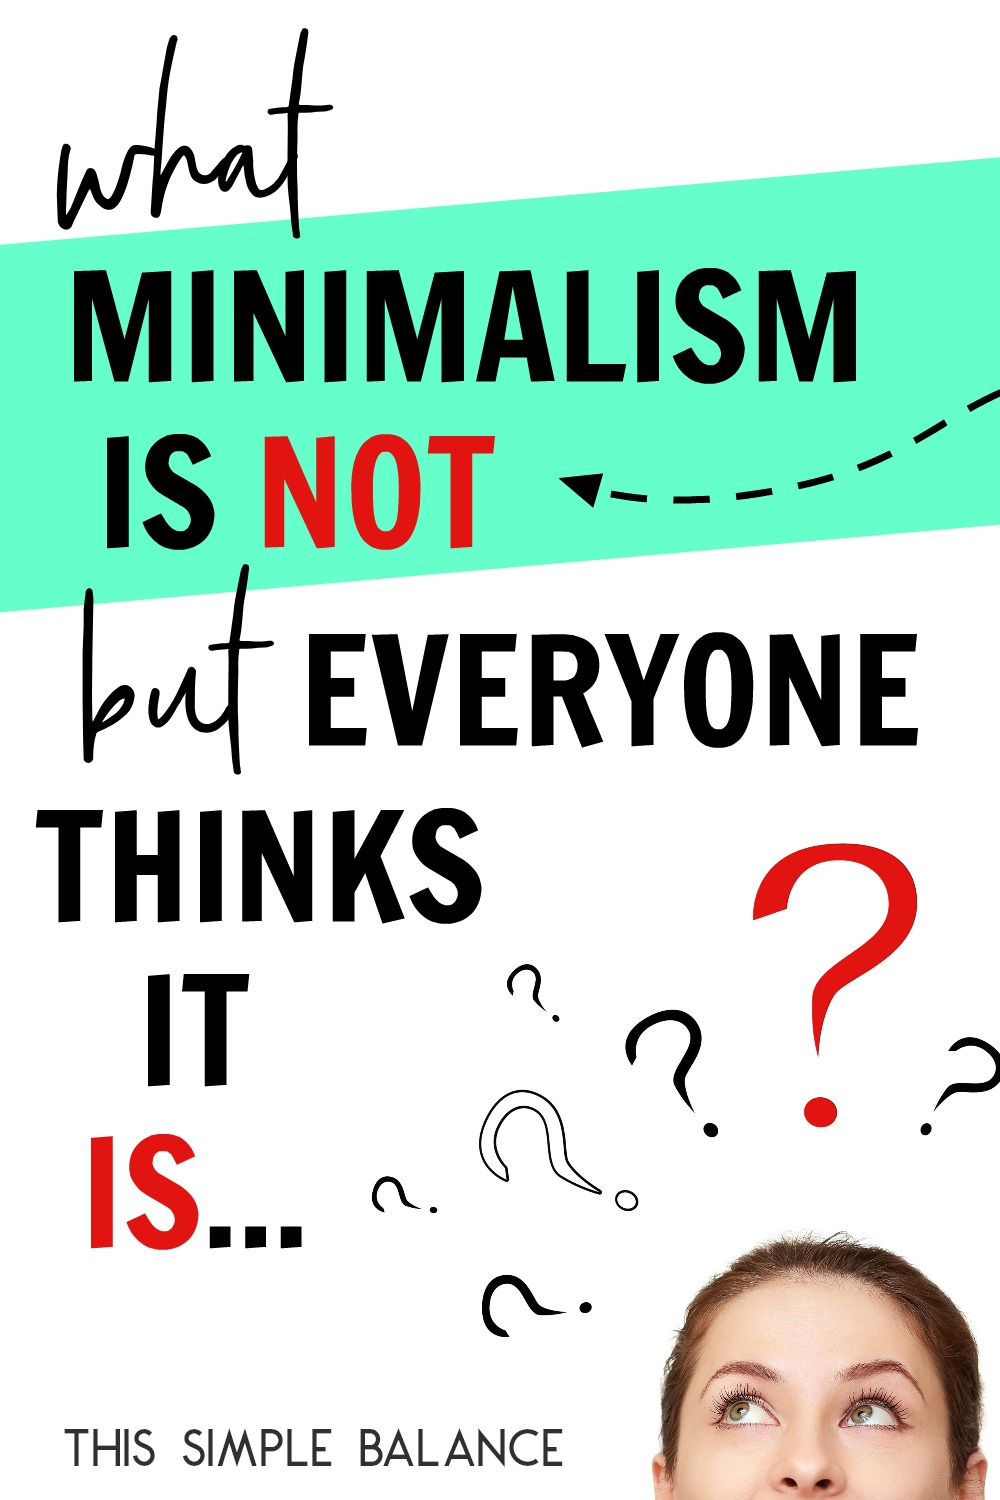 What is minimalism, anyways? There are SO many misconceptions out there about minimalism. Don't let these misconceptions hold you back from experiencing minimalism's benefits!